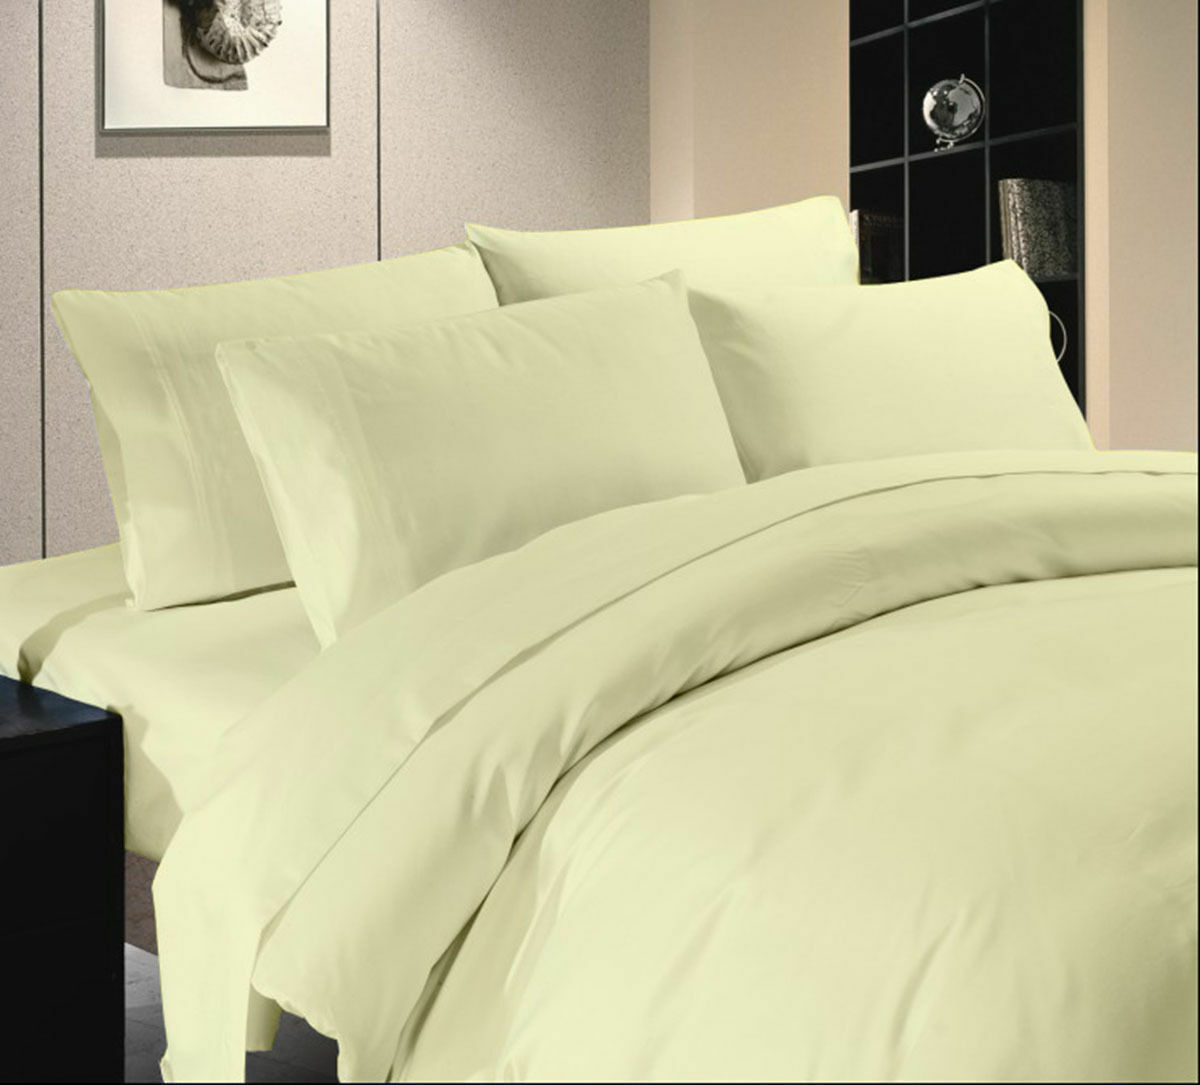 1000TC Egyptian Cotton Ivory Solid Bed Skirt Select Drop Length All US Sizes